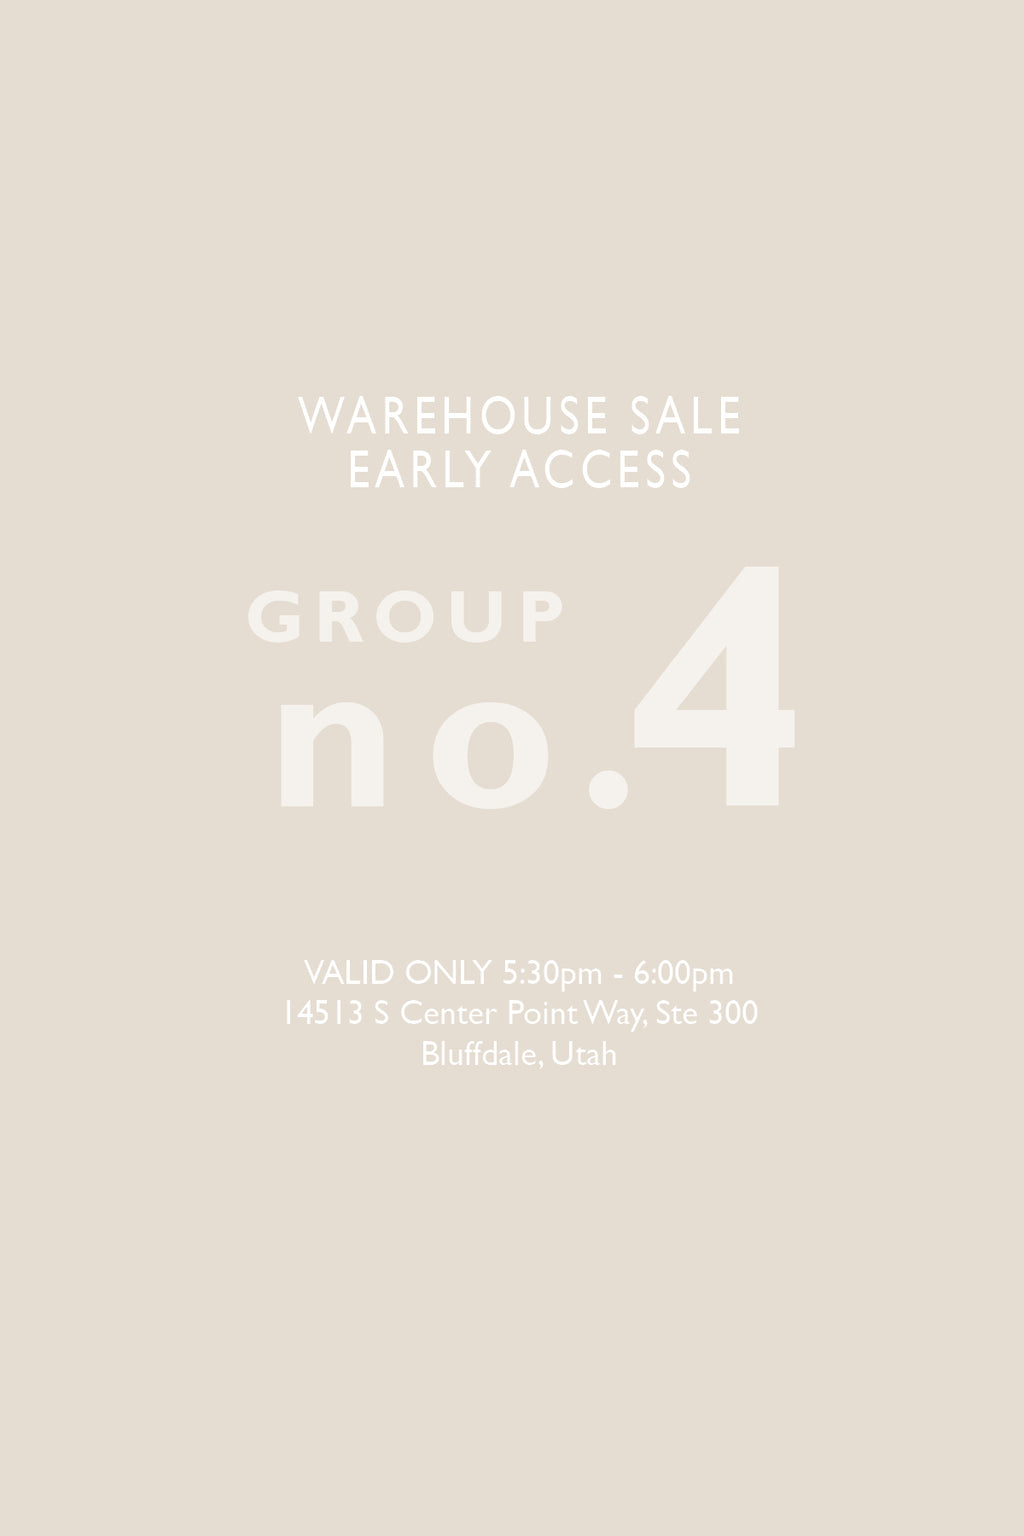 Warehouse Sale EARLY ACCESS: Group No. 4 | 5:30-6:00pm